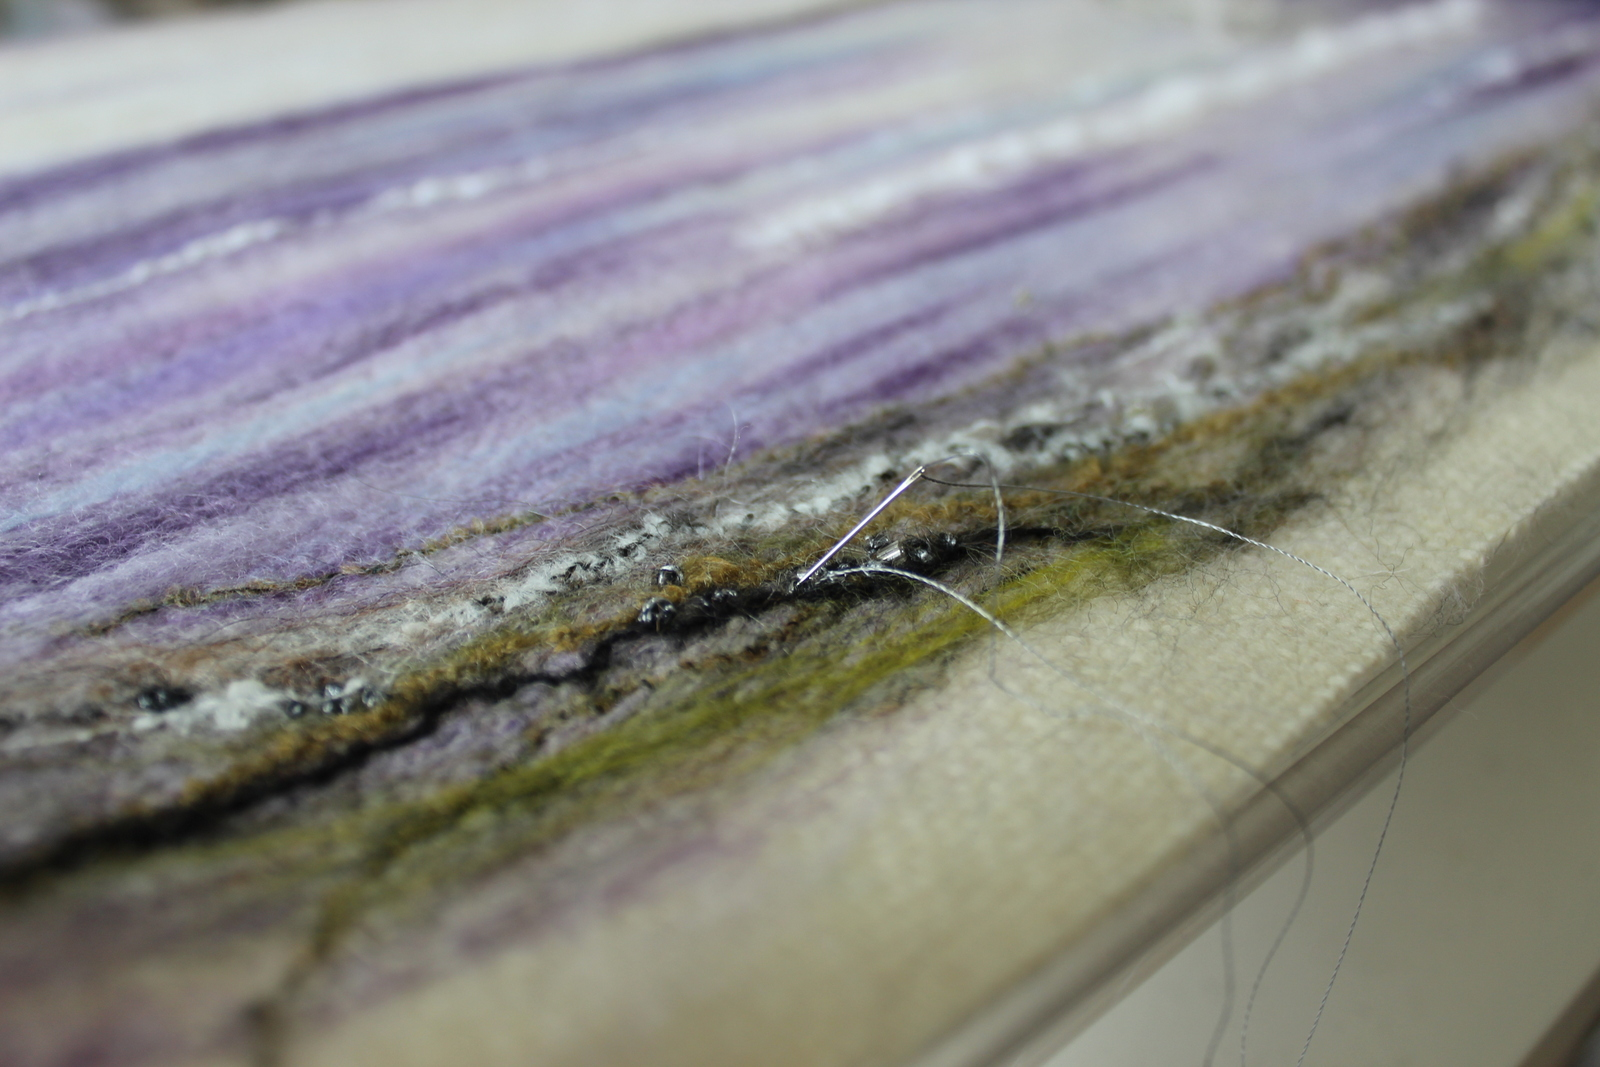 A few little beads to add to the shoreline textures...